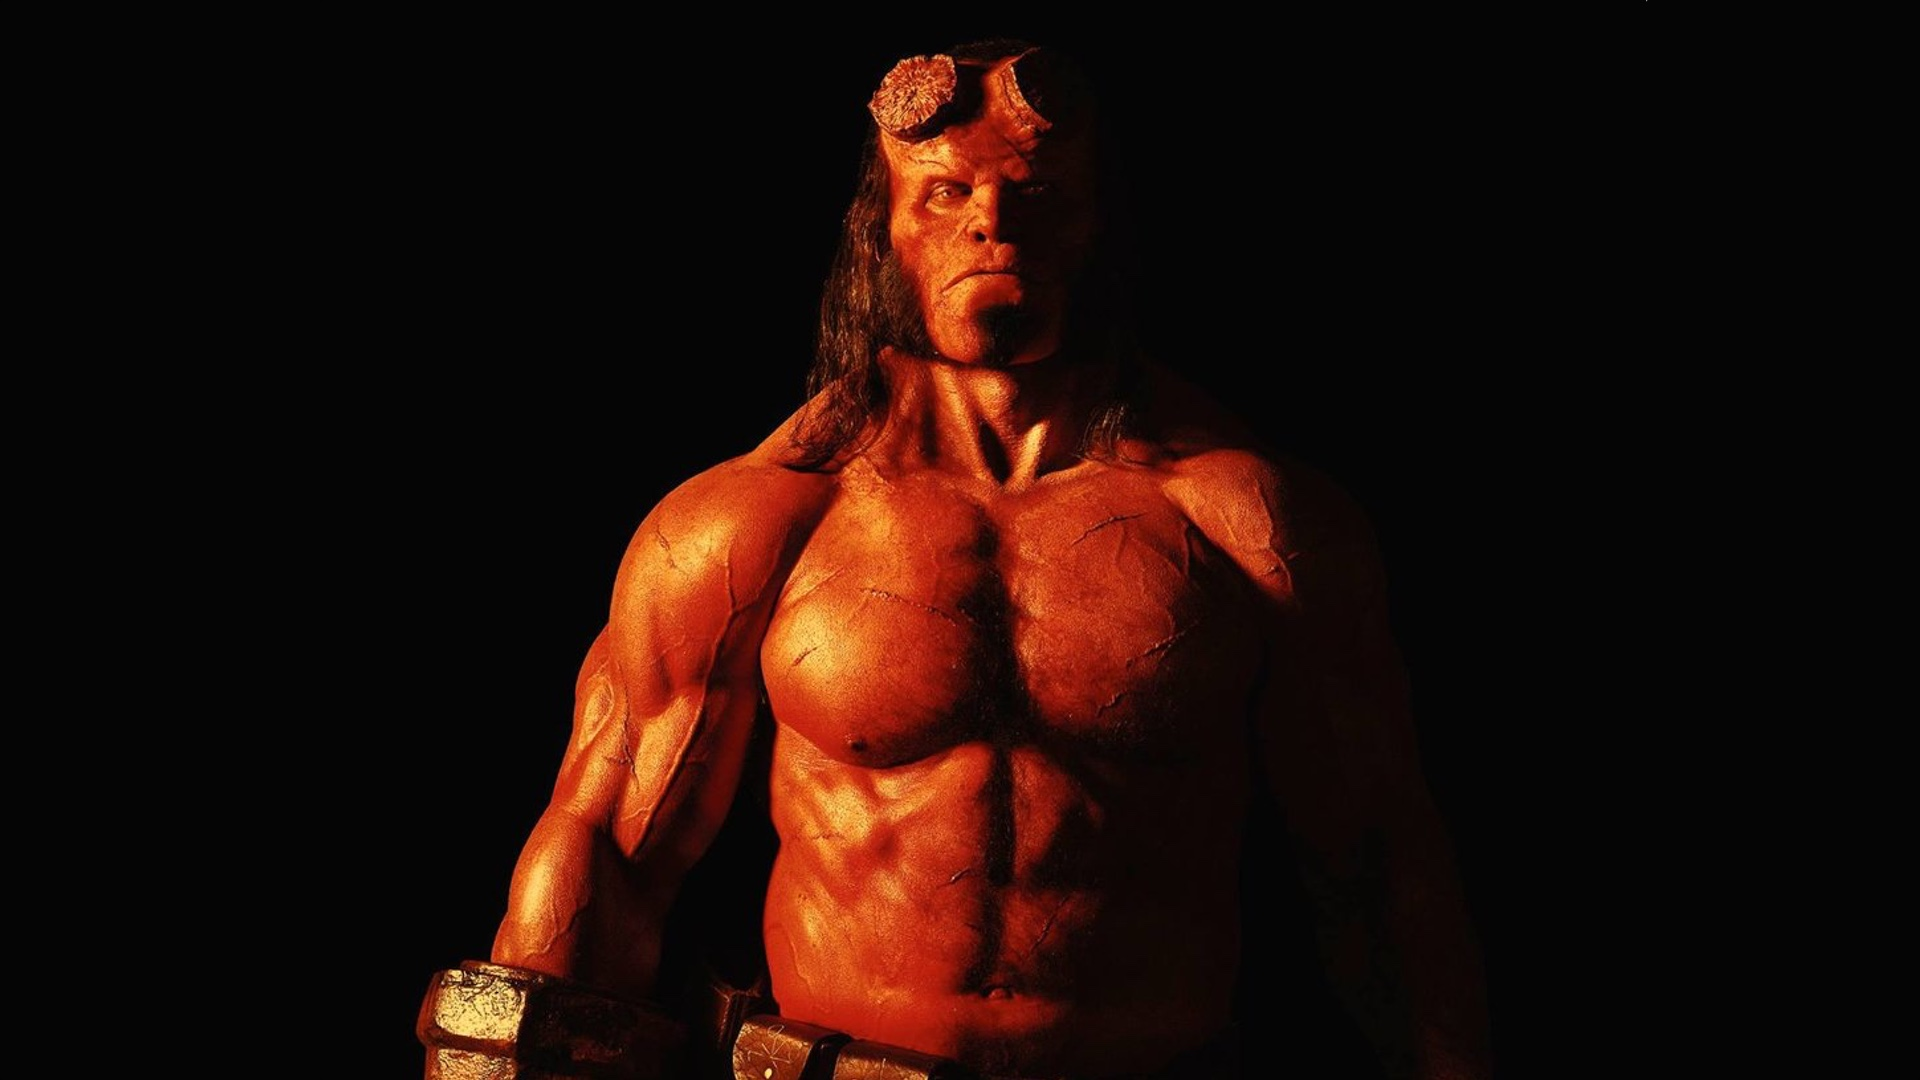 the-release-date-for-david-harbours-hellboy-reboot-is-getting-pushed-back-social.jpg